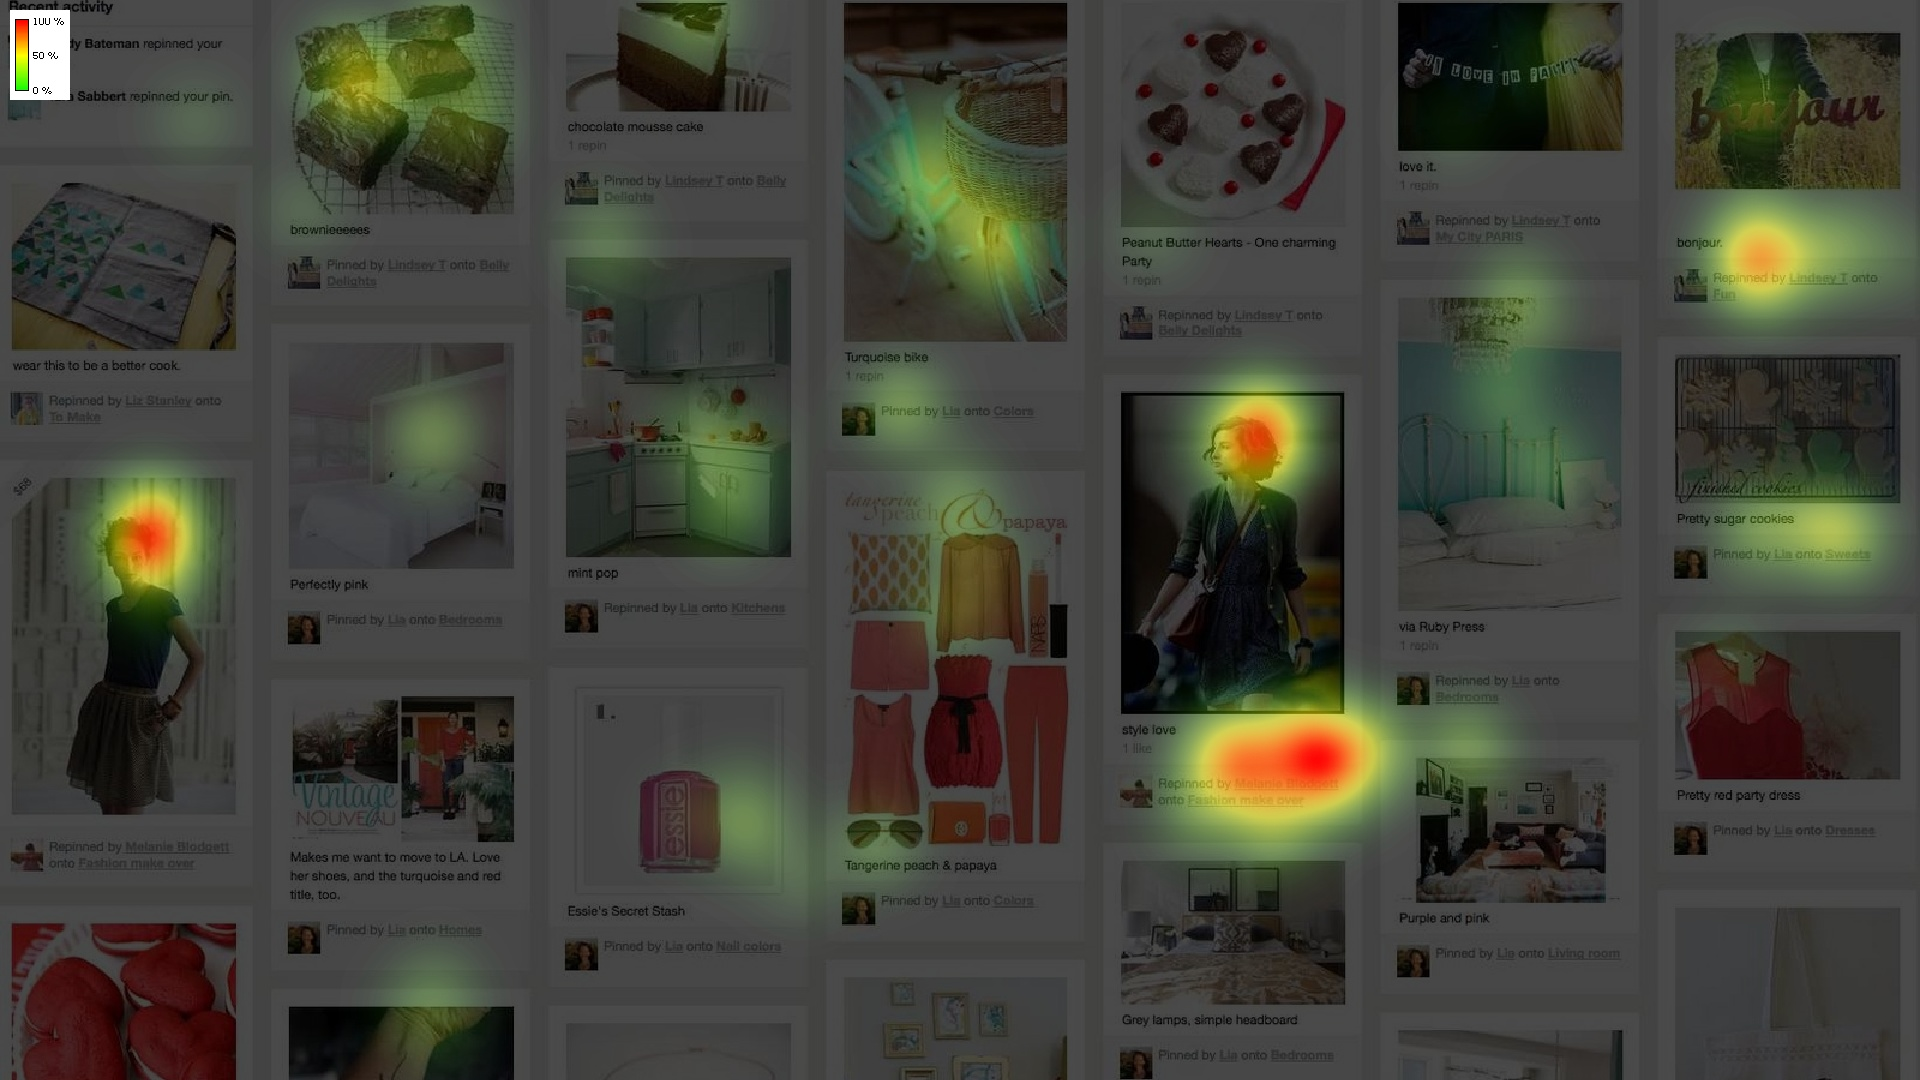 The effect of human image in B2C website design: an eye ...